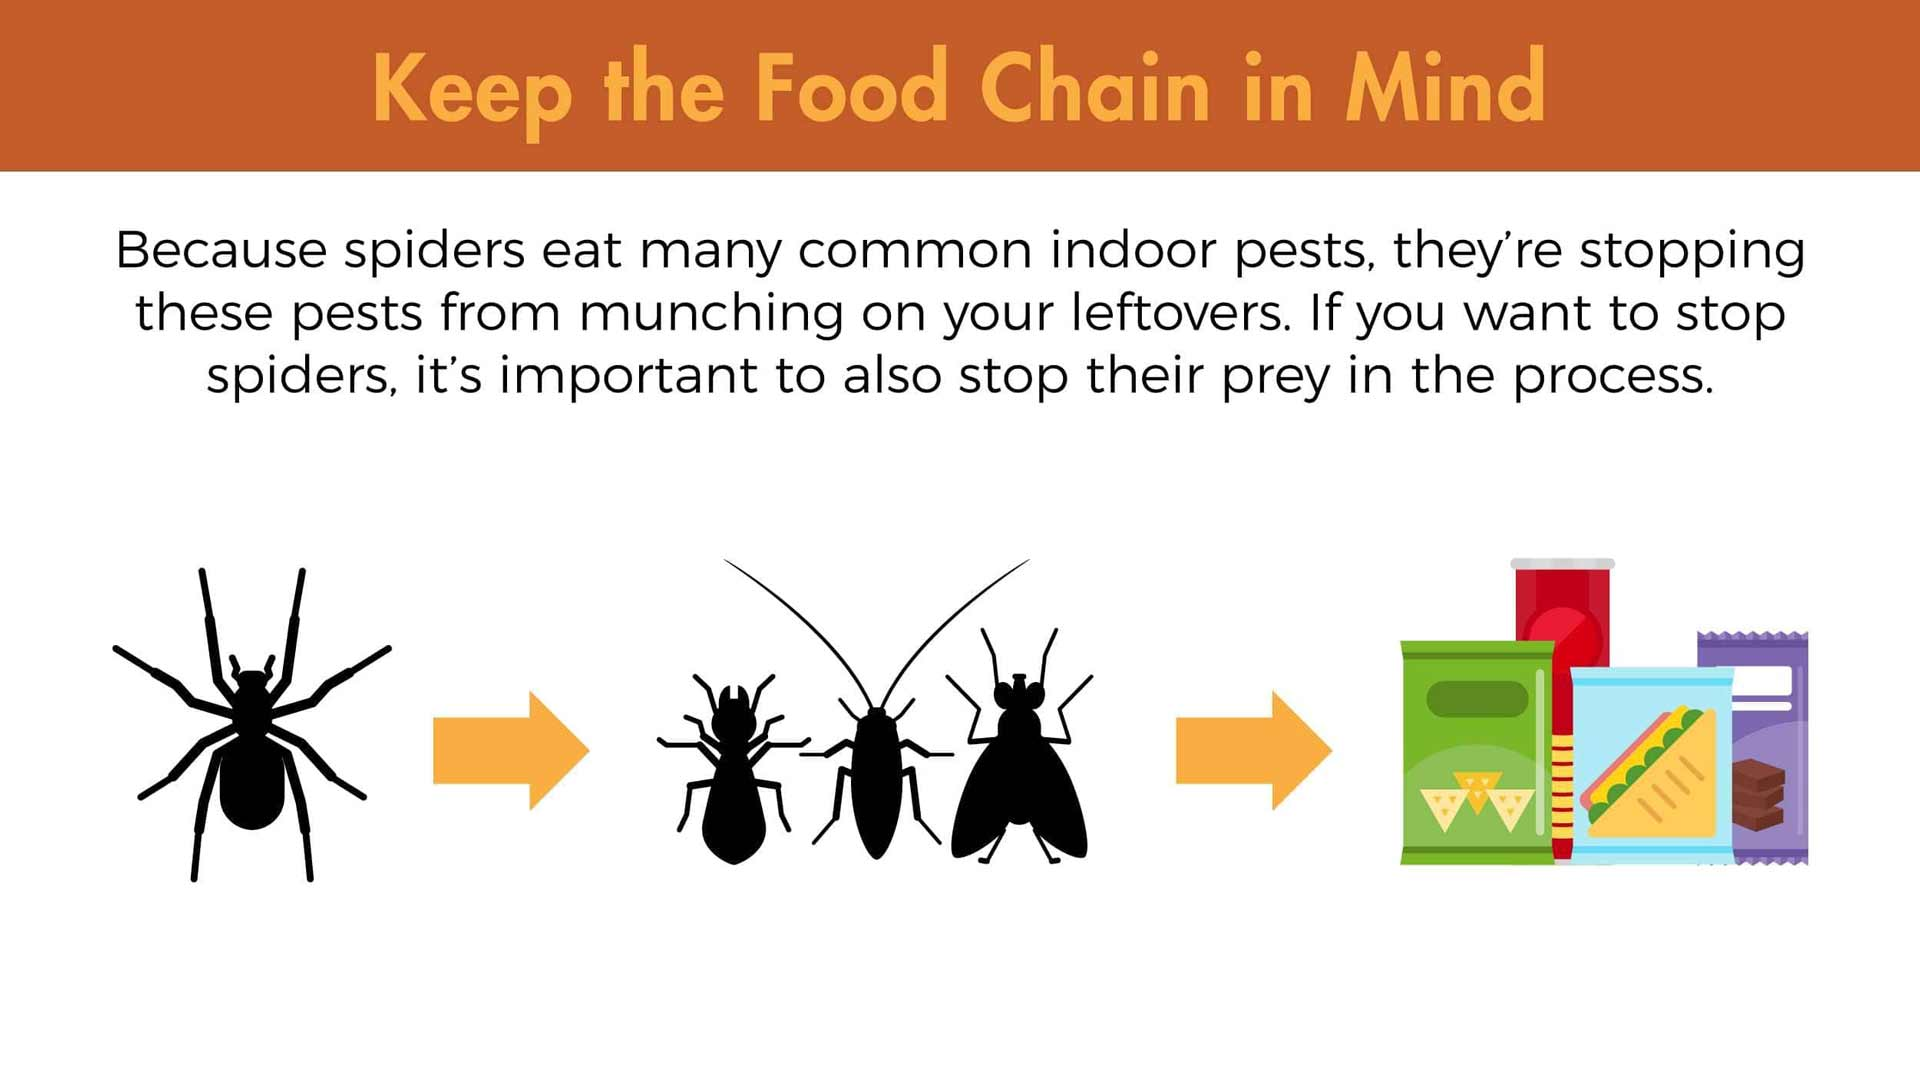 Keep the food chain in mind. Because spiders eat many common indoor pests, they're stopping these pests from munching on your leftovers. If you want to stop spiders, it's important to also stop their prey in the process.